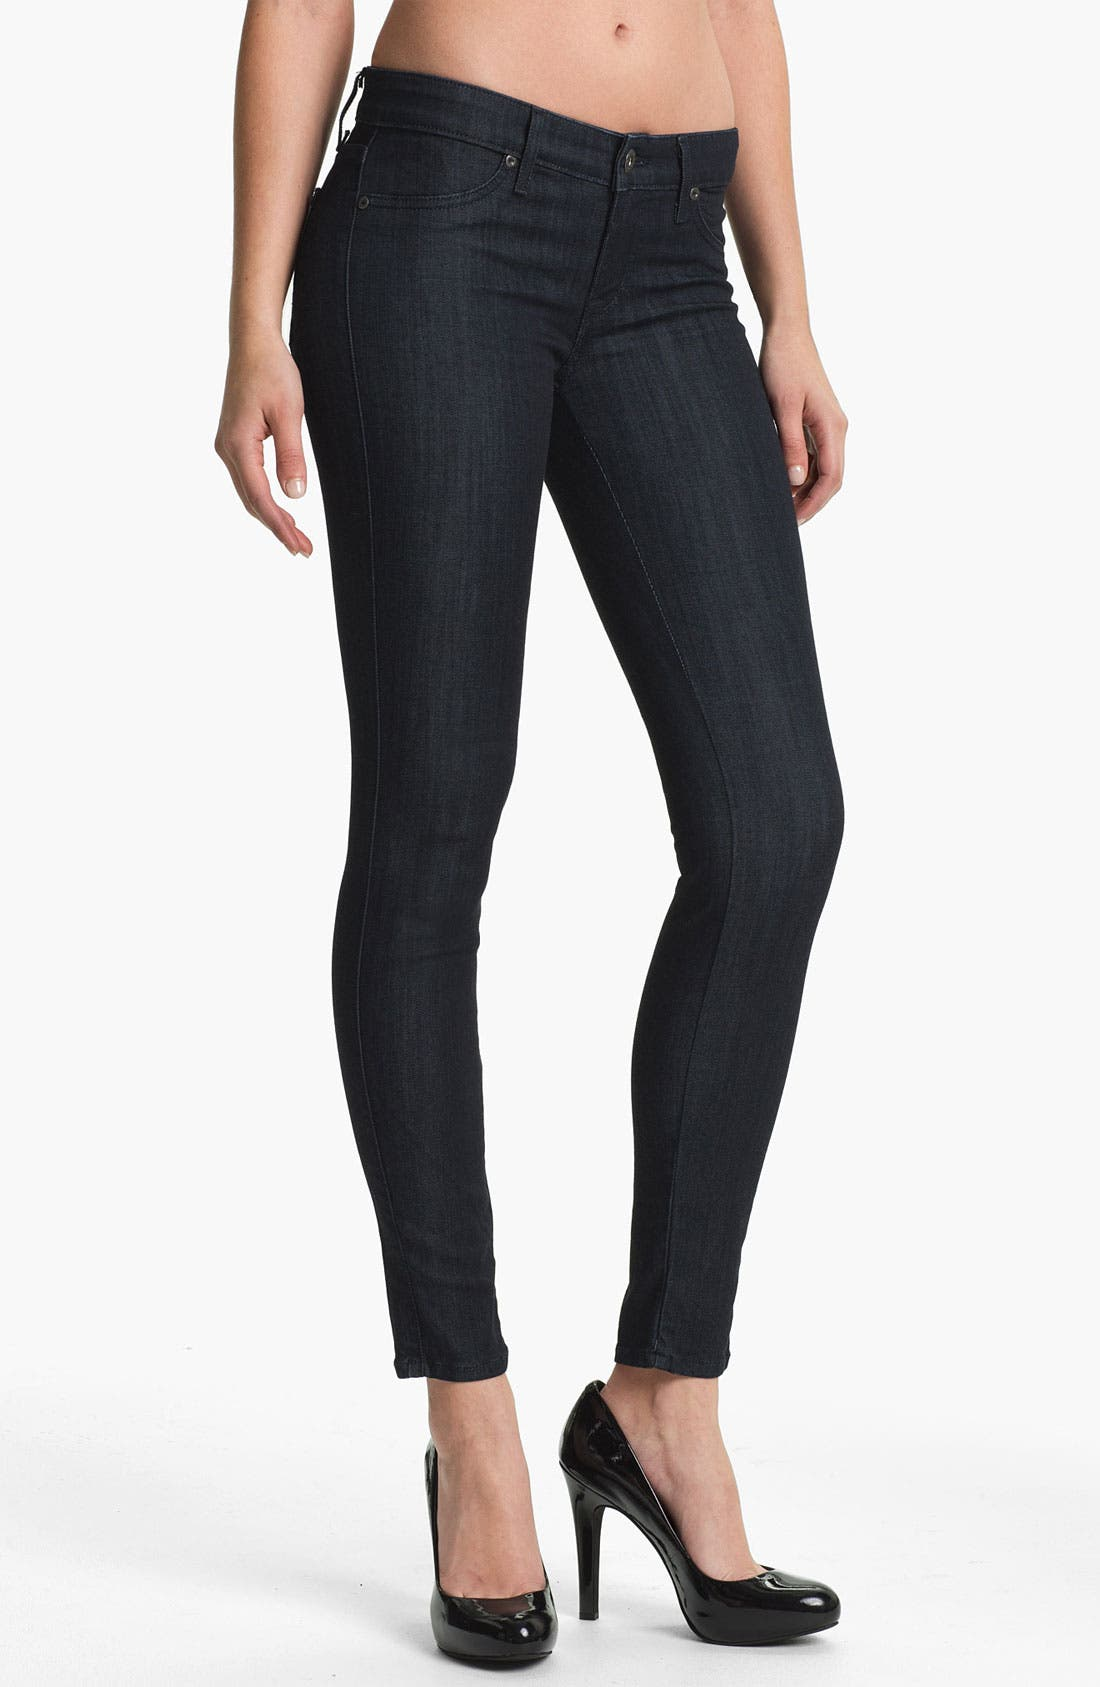 Alternate Image 1 Selected - Rich & Skinny 'Legacy' Skinny Jeans (Indigo Rinse)